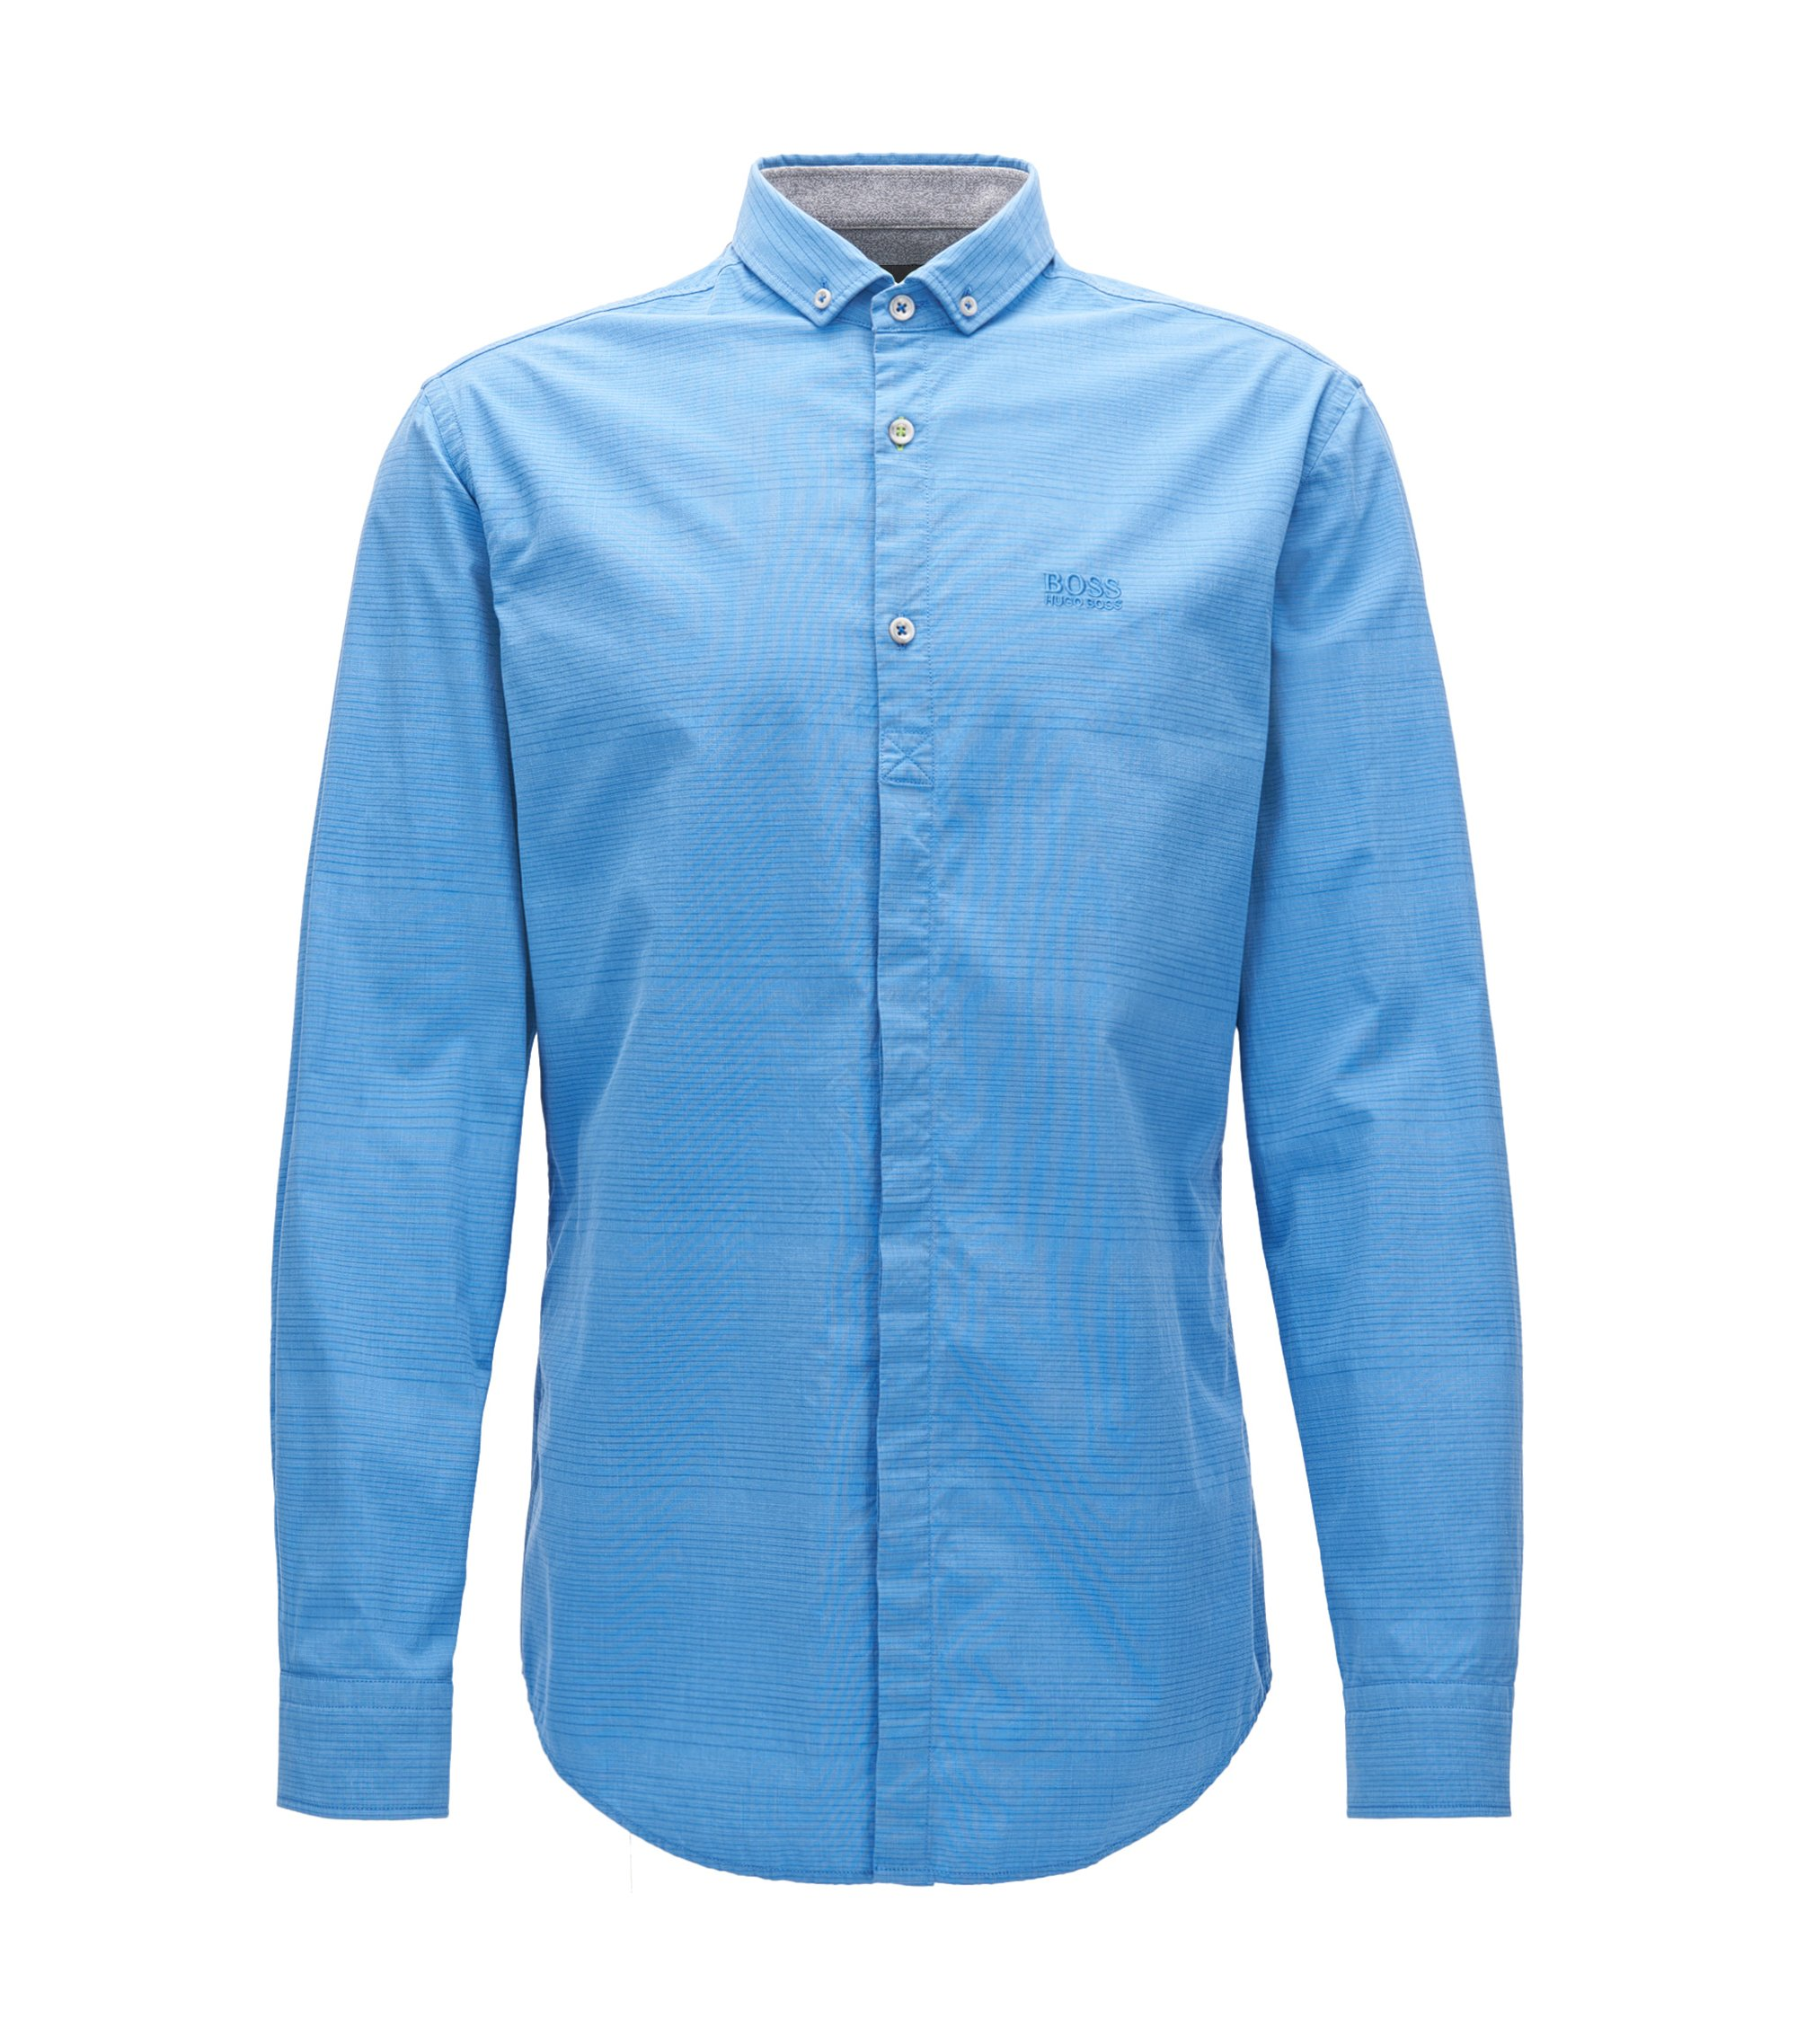 Striped Stretch Poplin Sport Shirt, Slim Fit | Burris, Blue